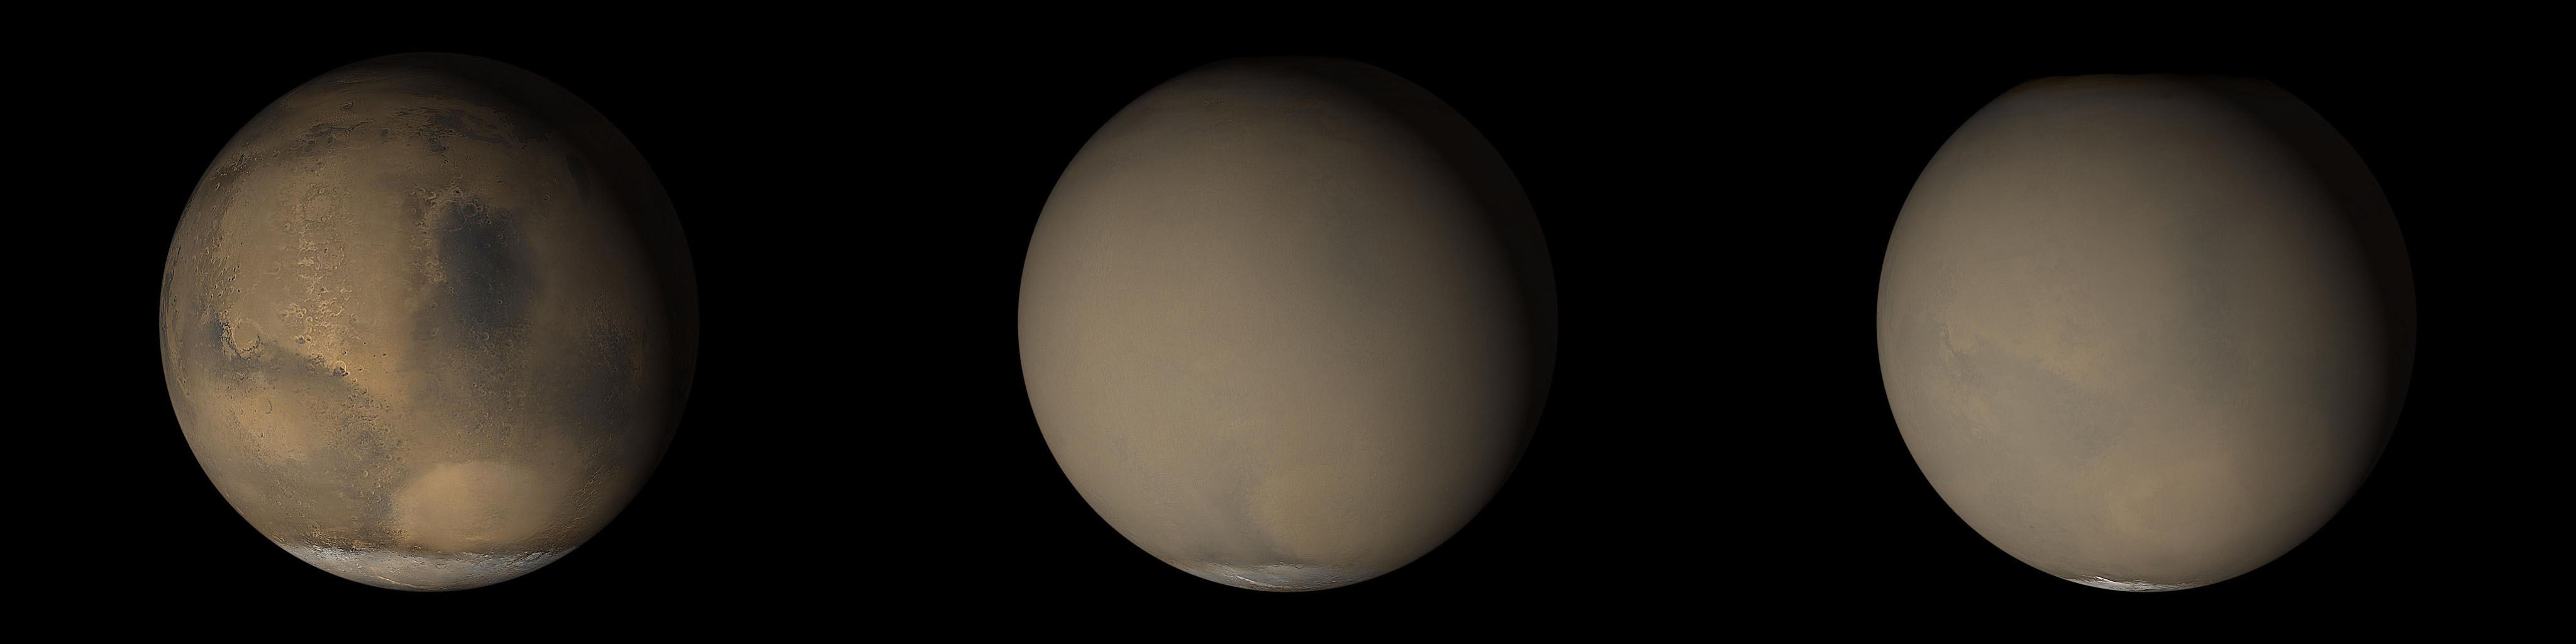 NASA's Mars Global Surveyor shows that although dust storms occur year-round on Mars,  they often occur in greater numbers during certain seasons.